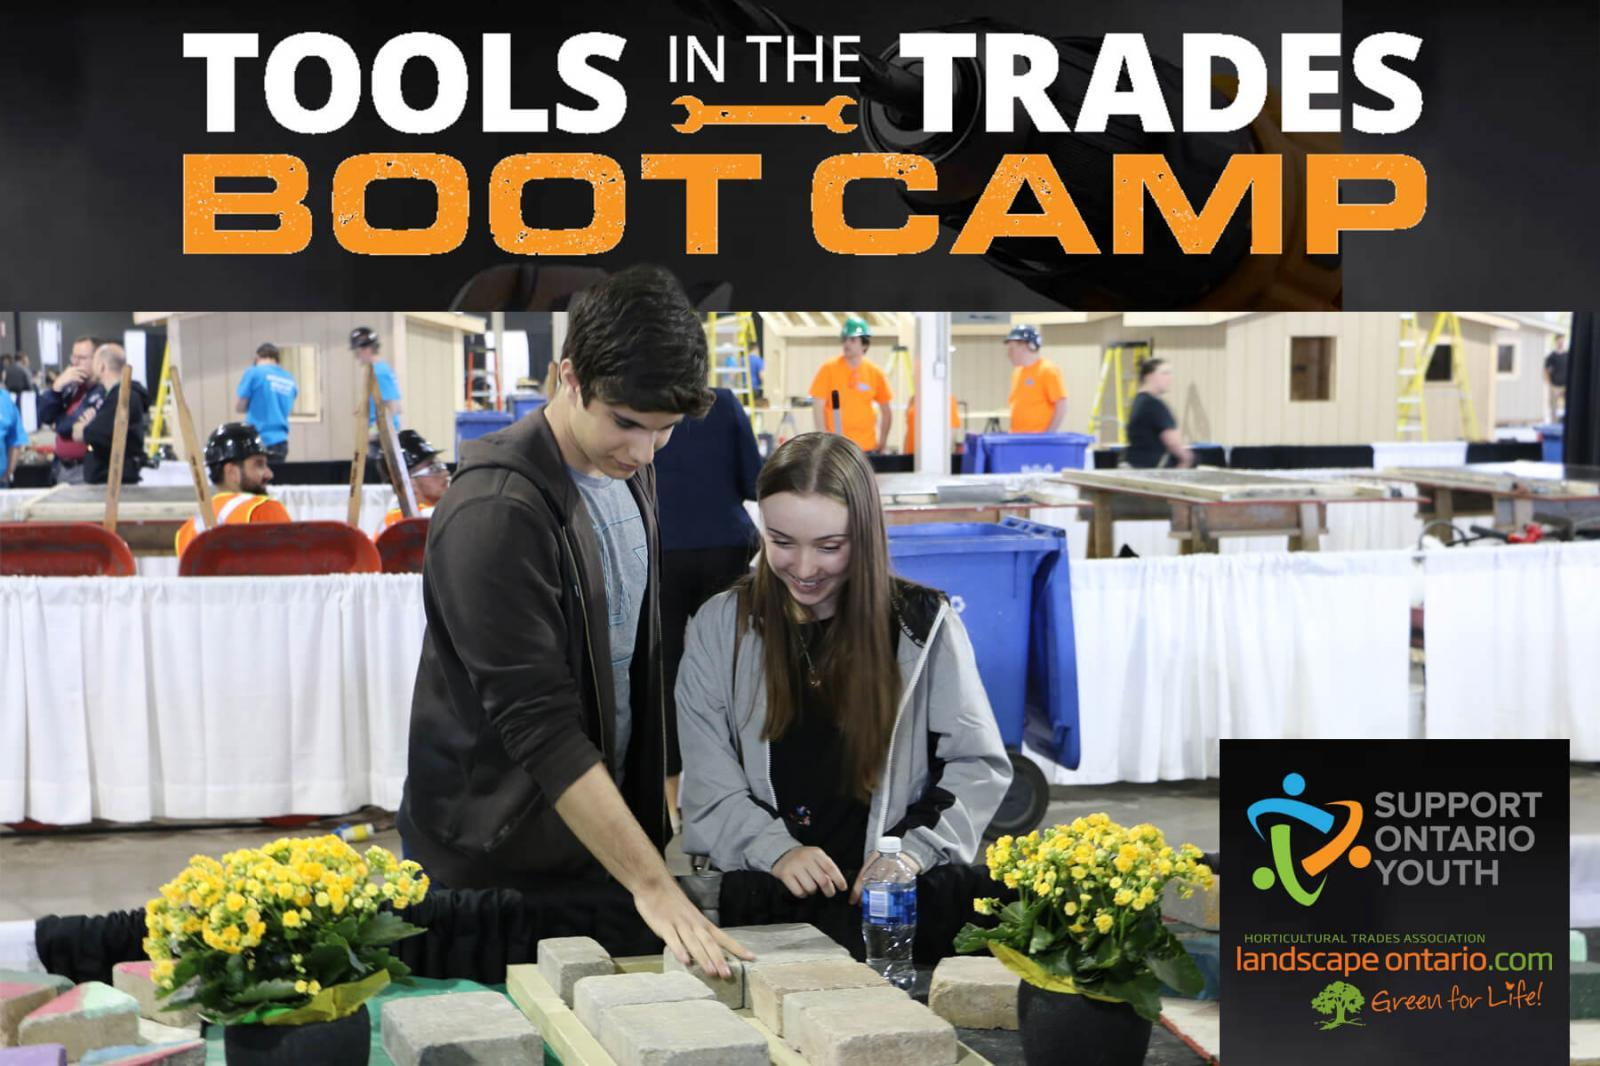 Tools in the Trades Boot Camp events